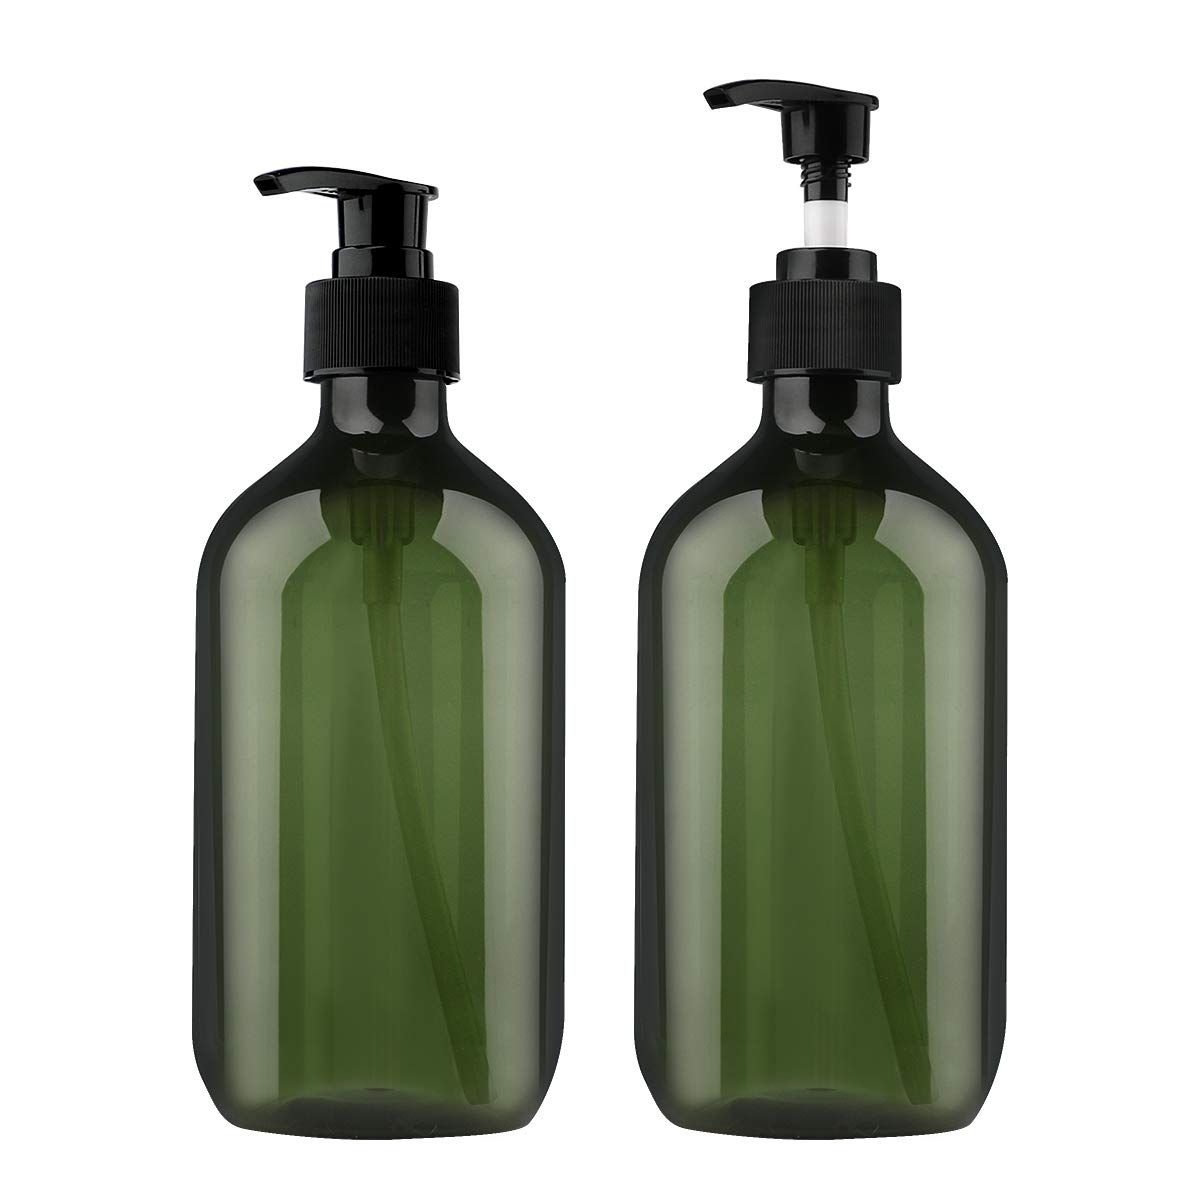 Yebeauty Shampoo Pump Bottle, 2 Pack 17oz/500ml Empty Bottle with Pump Multipurpose- Green